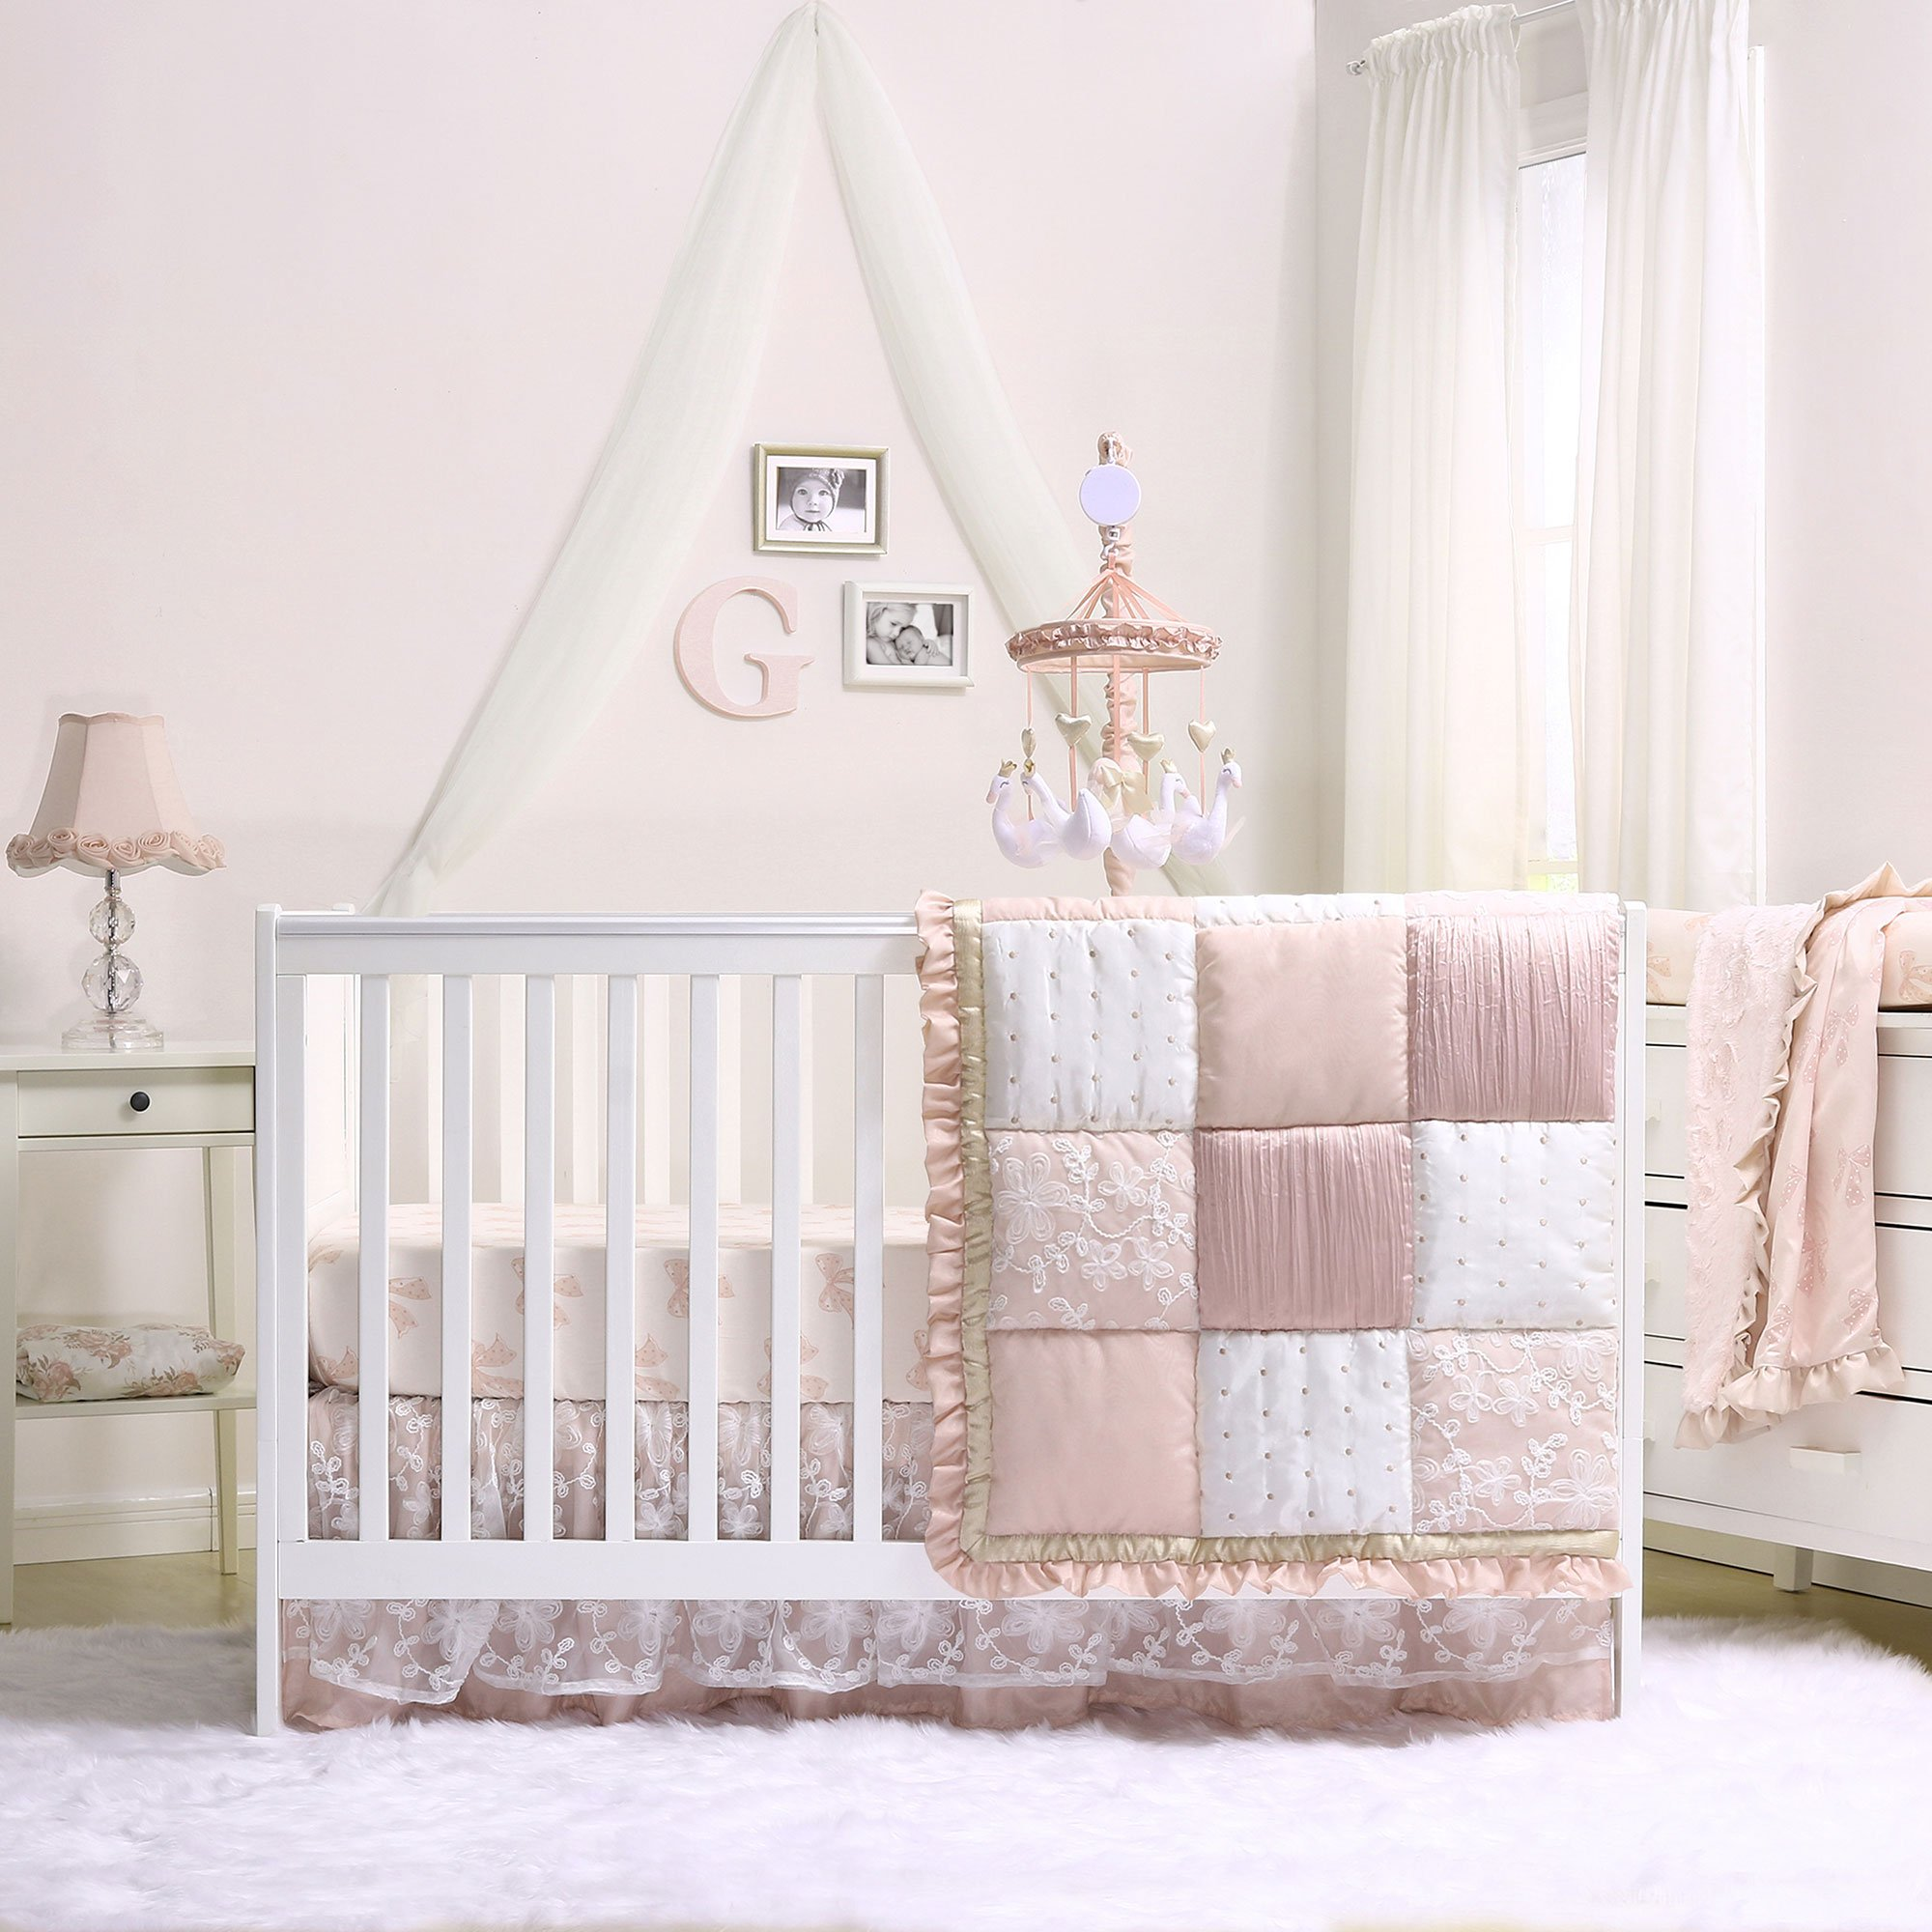 Grace 7 Piece Baby Girl Dusty Pink Crib Bedding Set by The Peanut Shell by The Peanut Shell